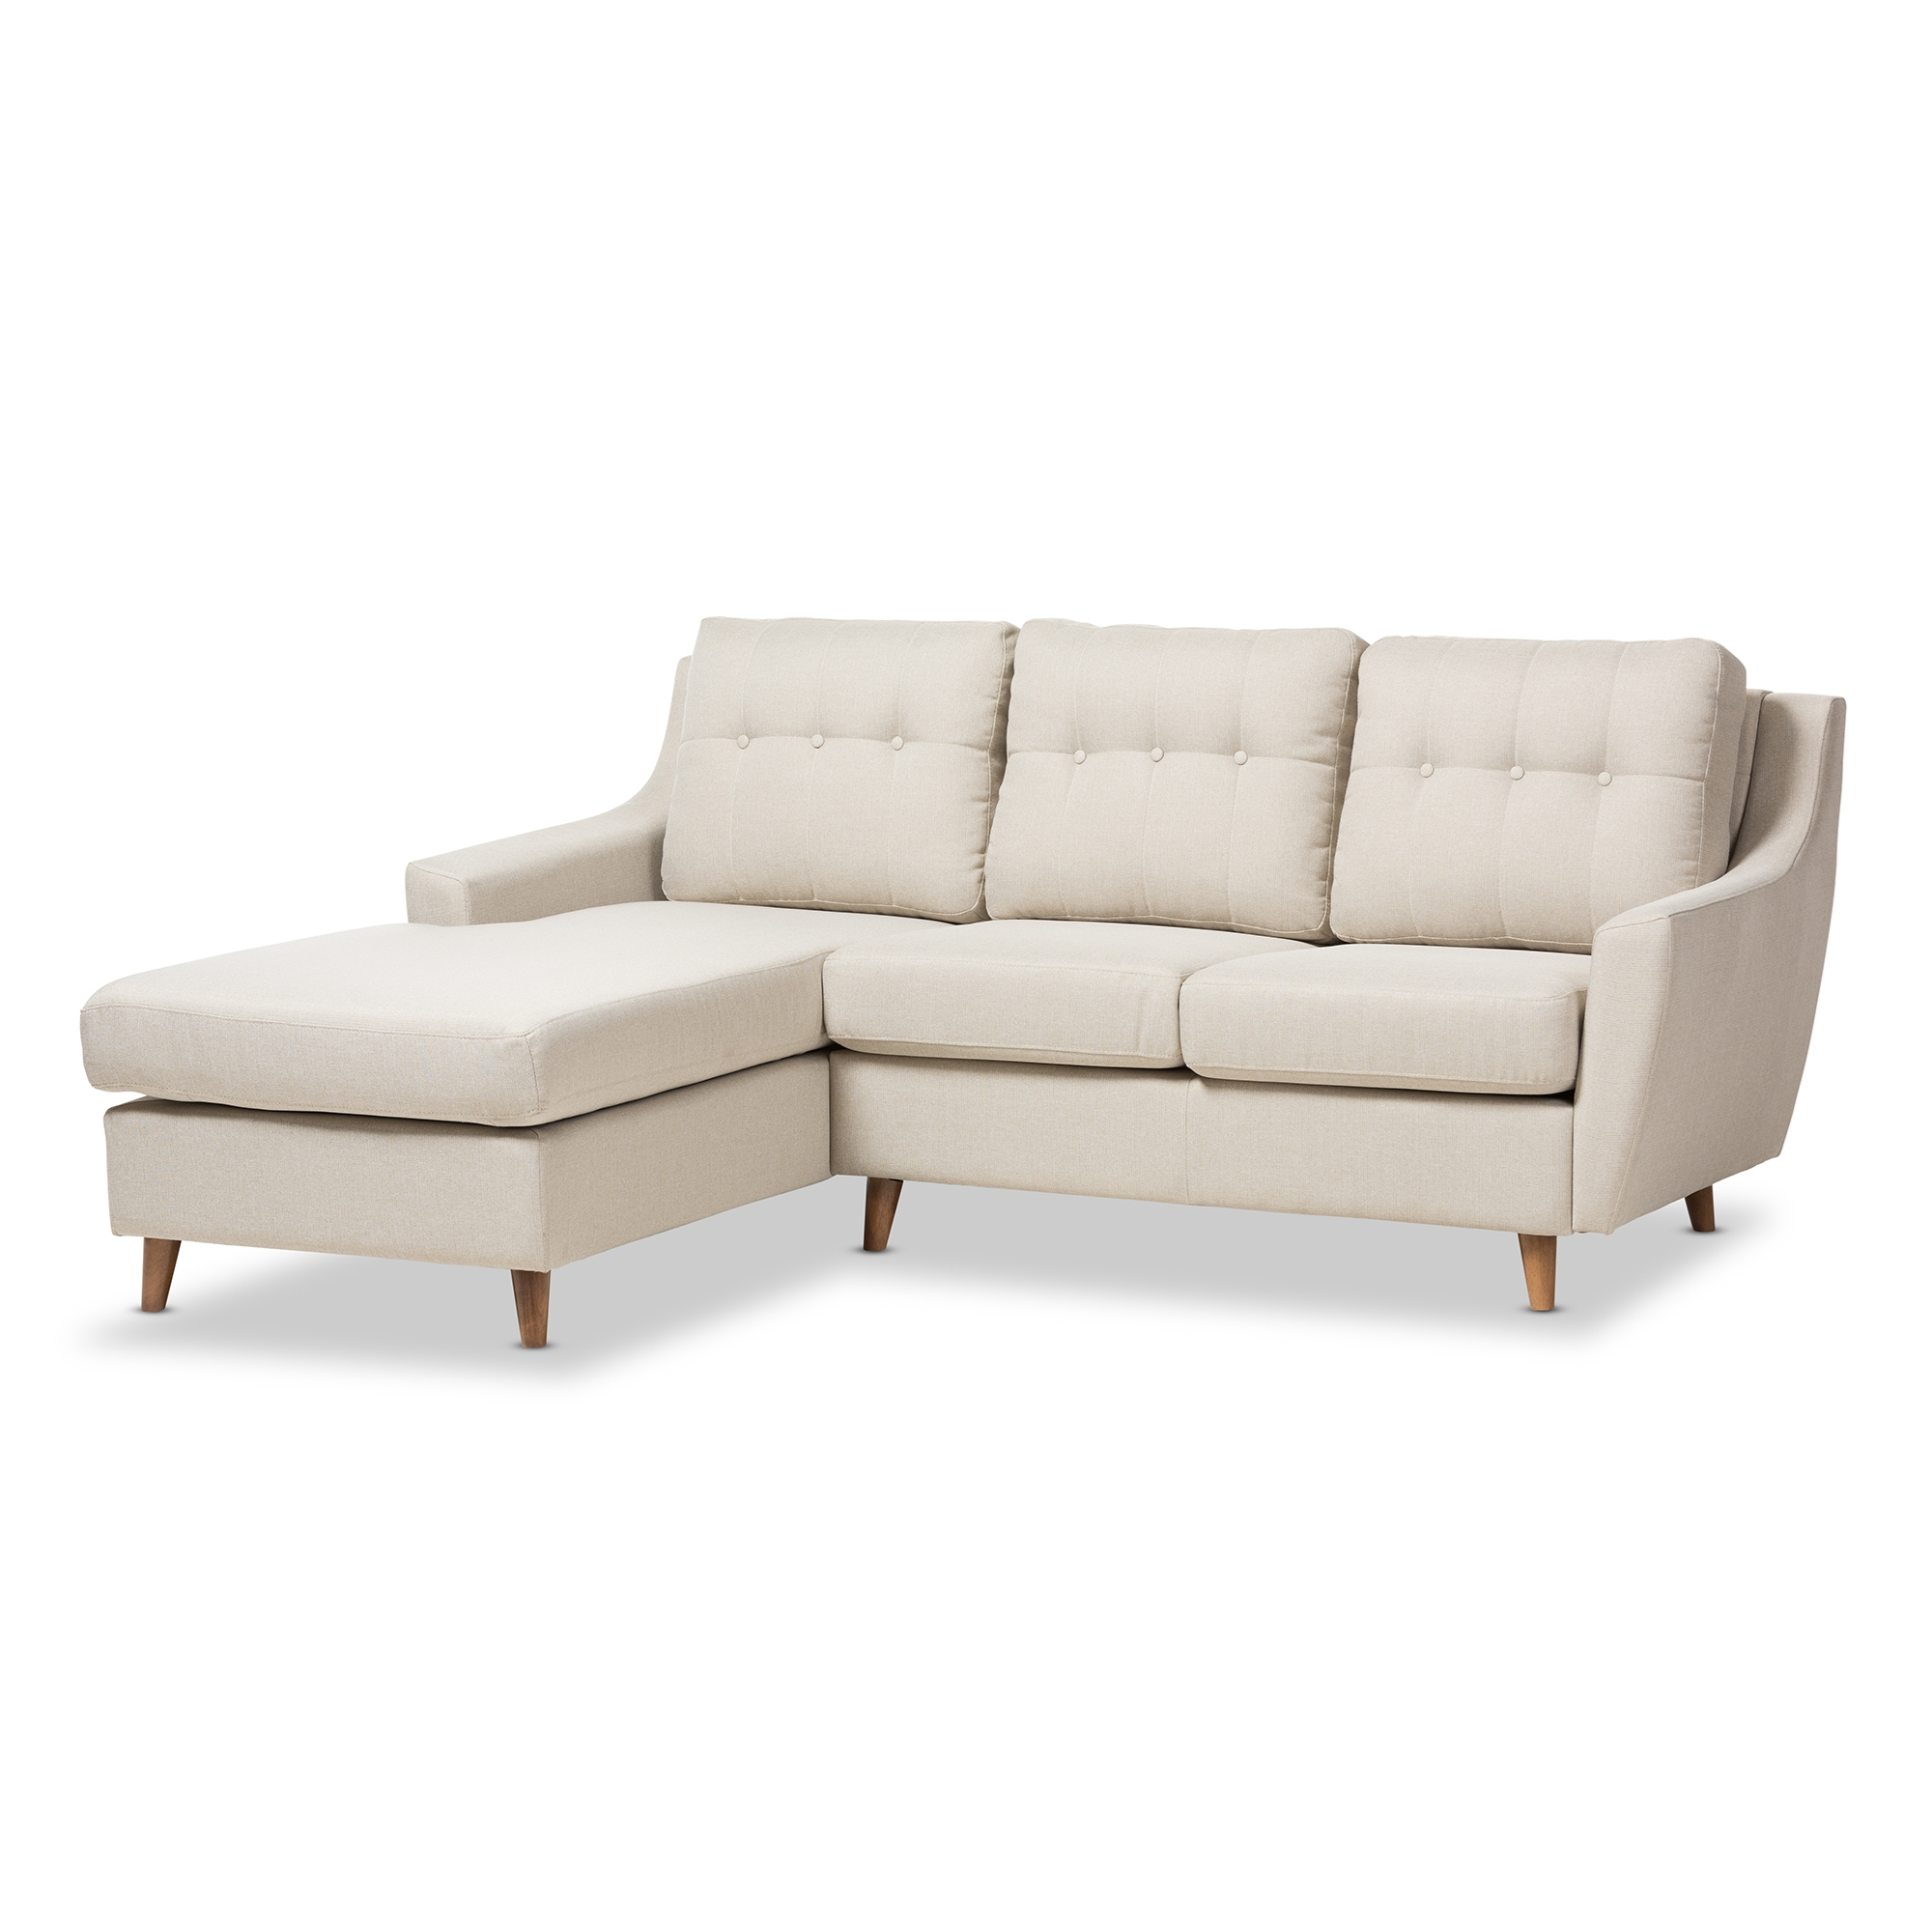 Baxton Studio Mckenzie Mid Century Light Beige Fabric Button Tufted 2 Piece  Sectional Sofa